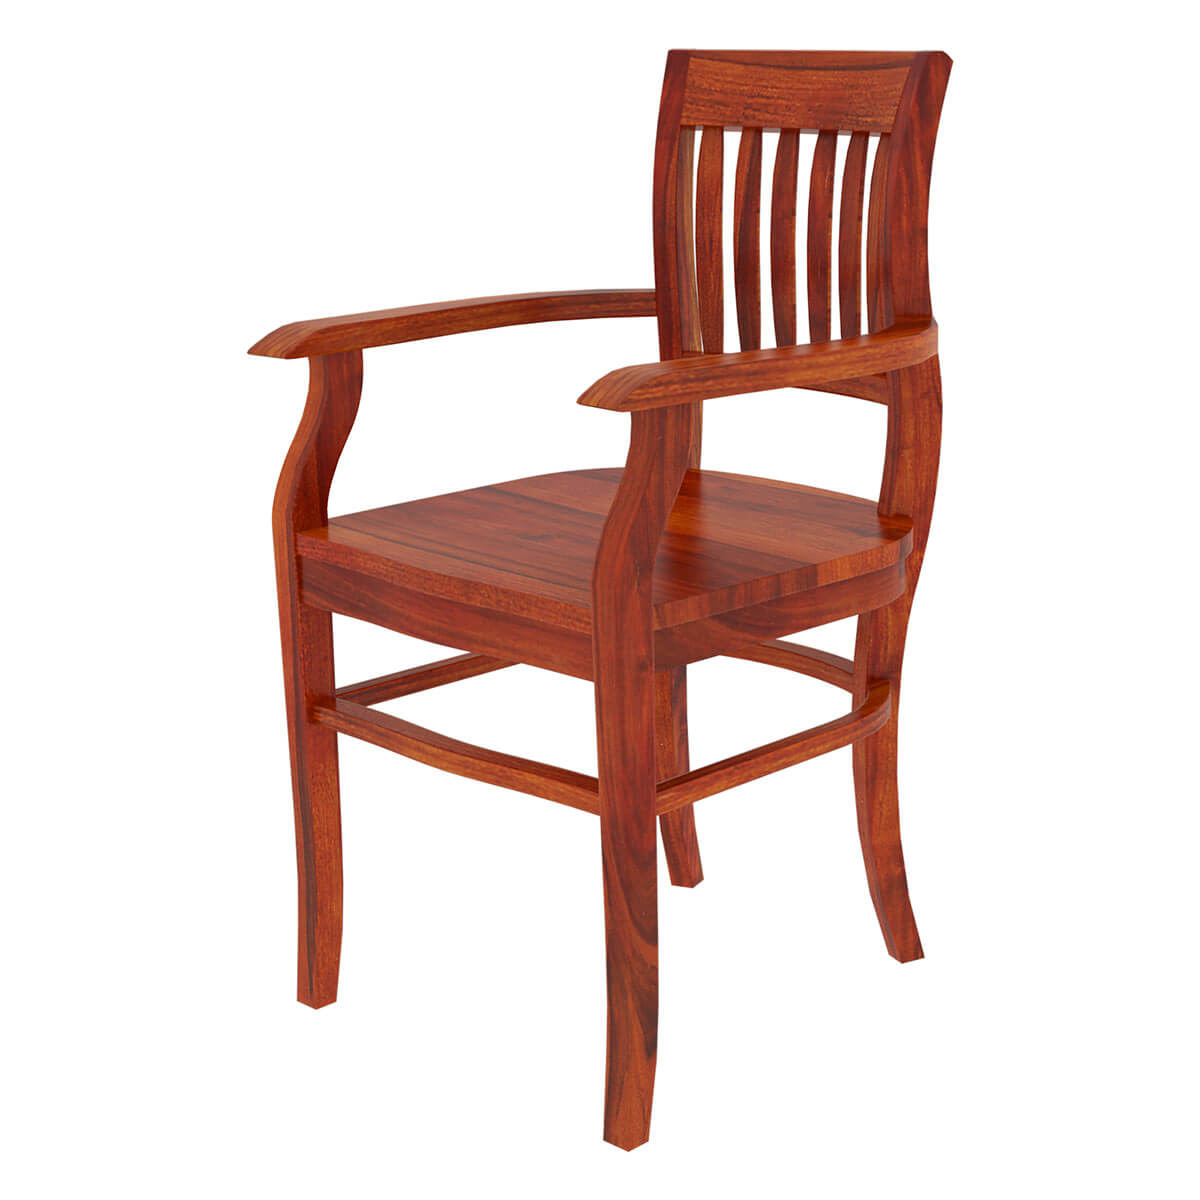 Unfinished Dining Room Chairs Siena Rustic Solid Wood Arm Dining Chair